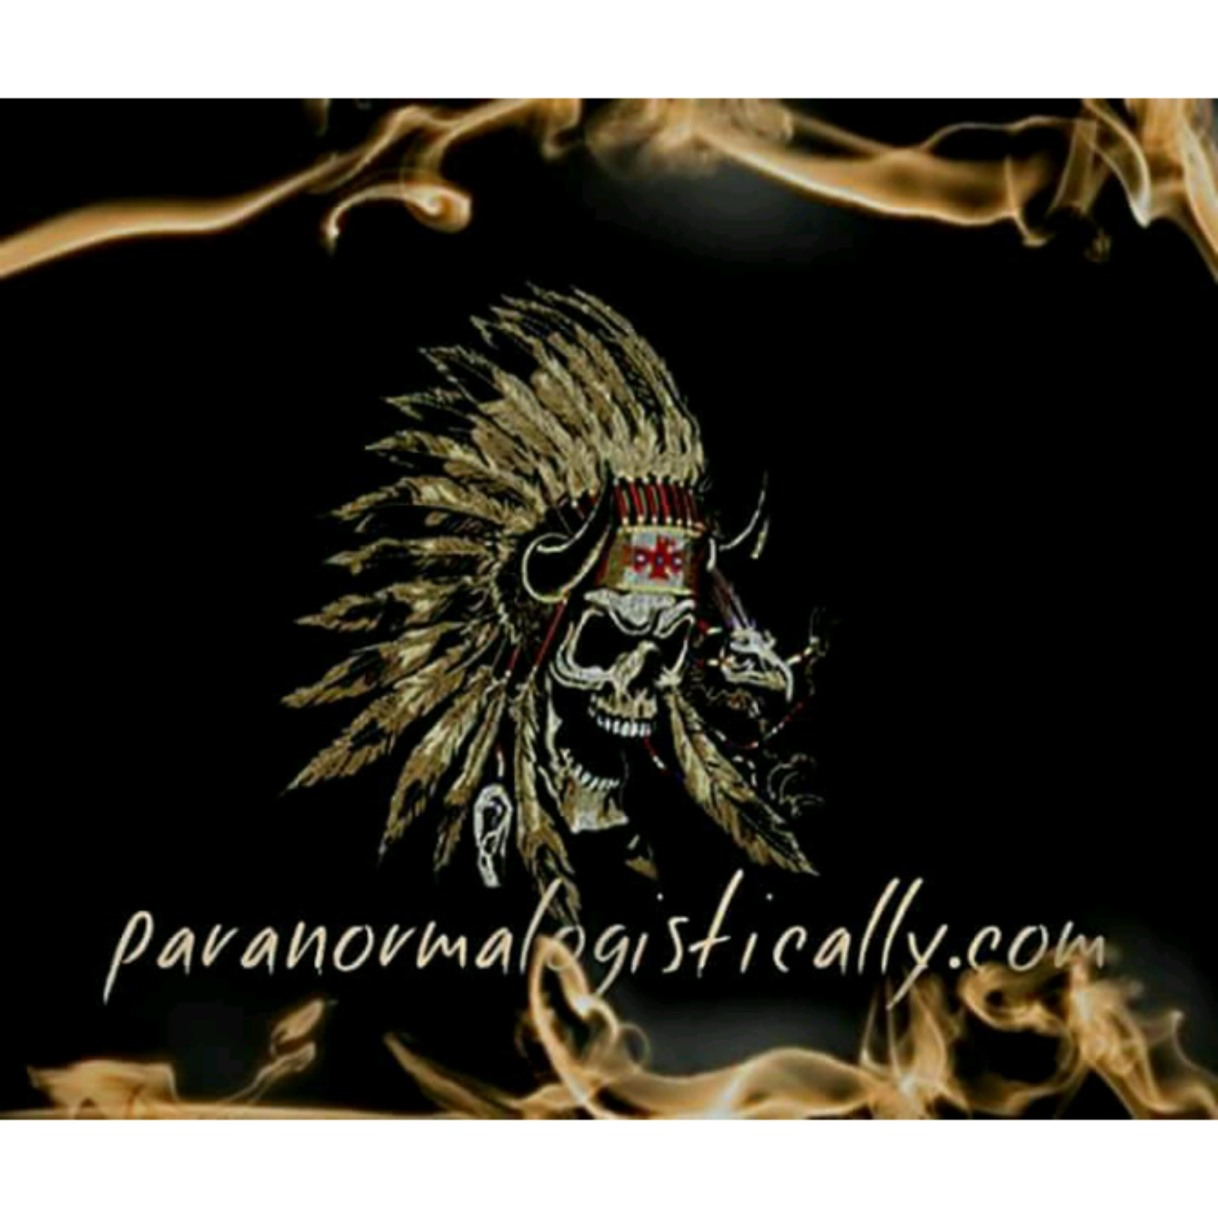 Paranormalogistically is now on Redbubble!